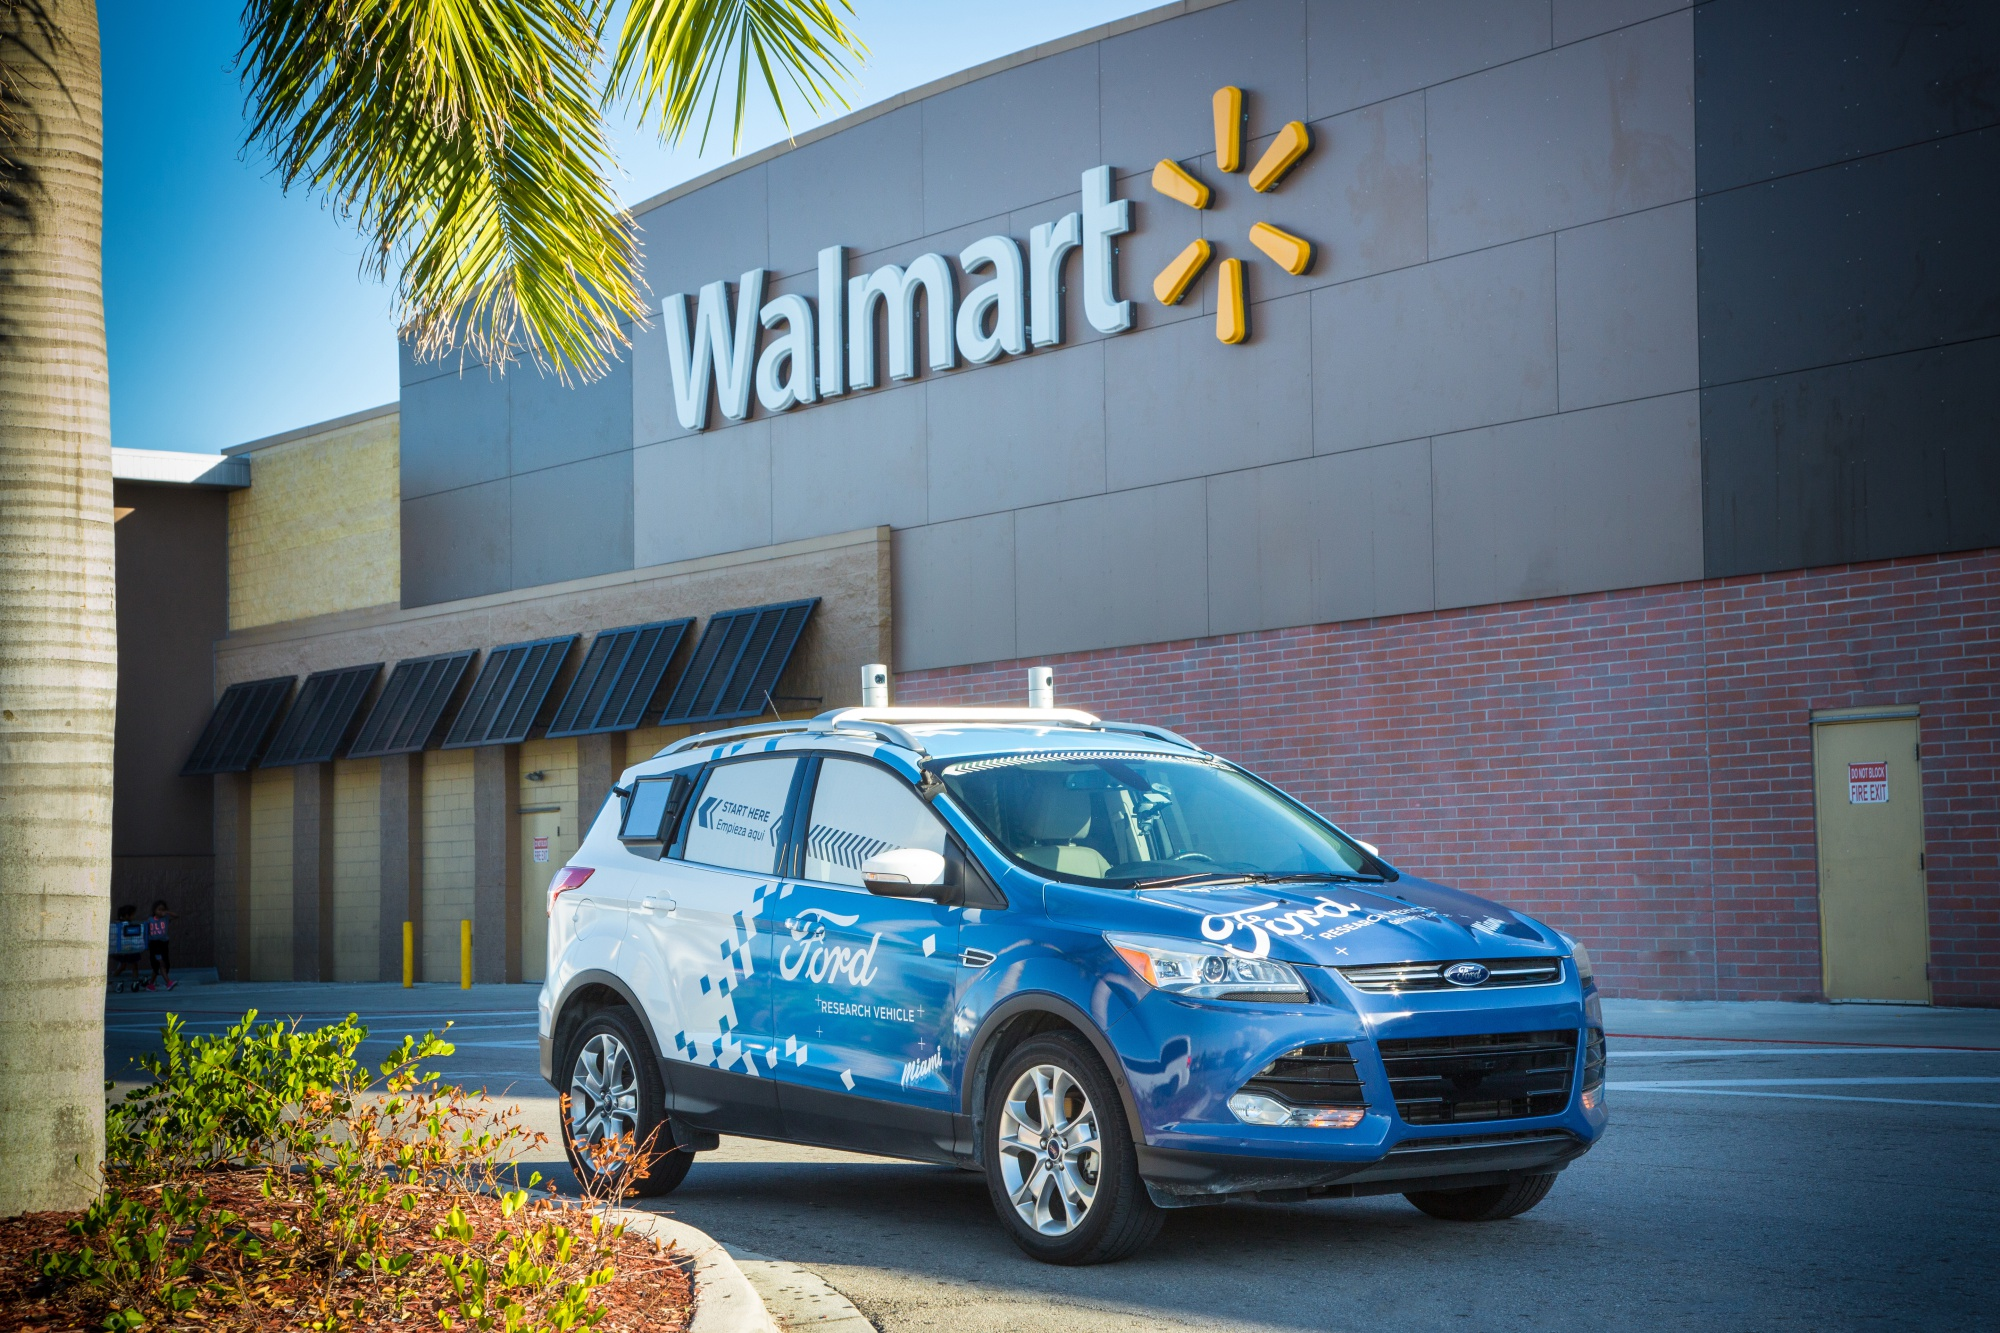 bloomberg.com - Keith Naughton - Ford's Autonomous Cars Will Whisk Walmart Deliveries to Doorsteps